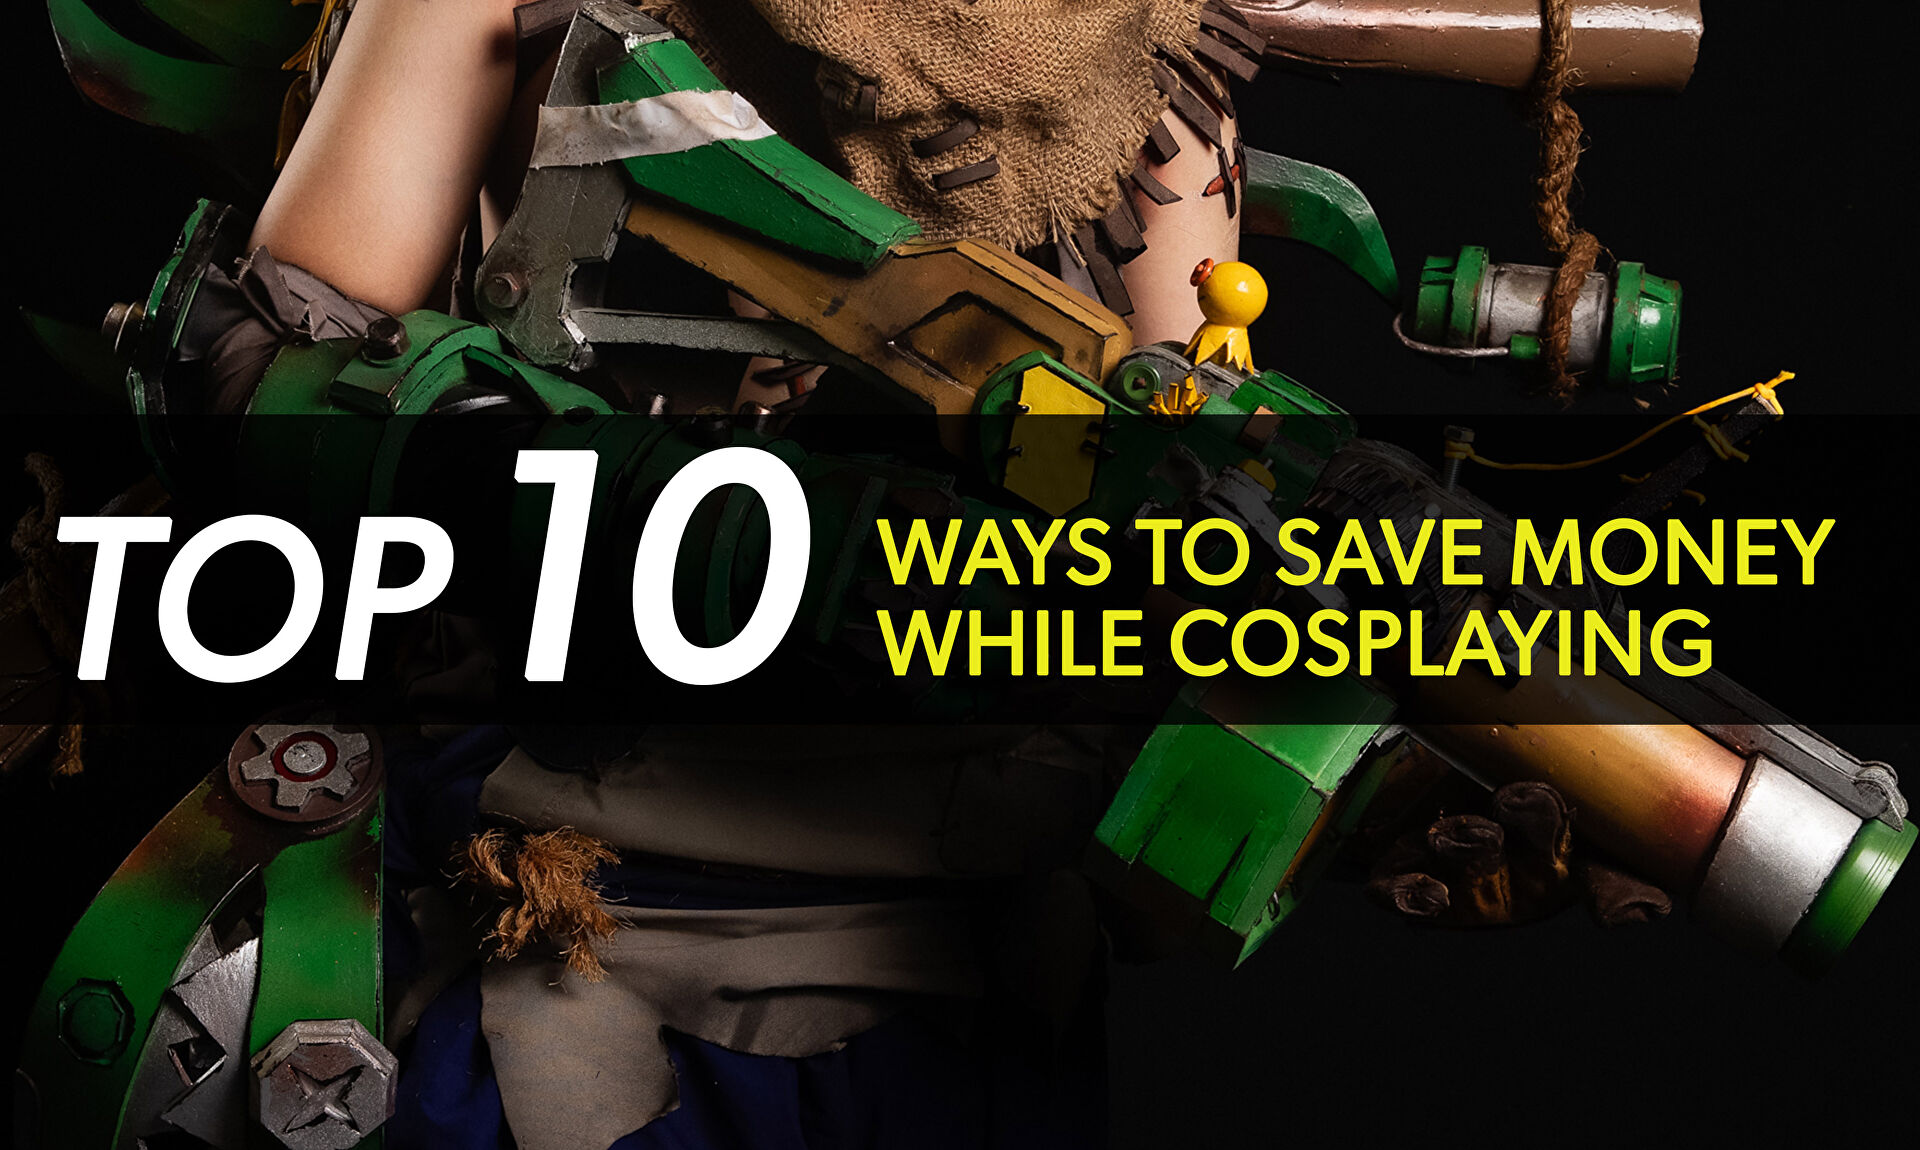 10 Best Ways To Save Money While Cosplaying | Cosplay Central